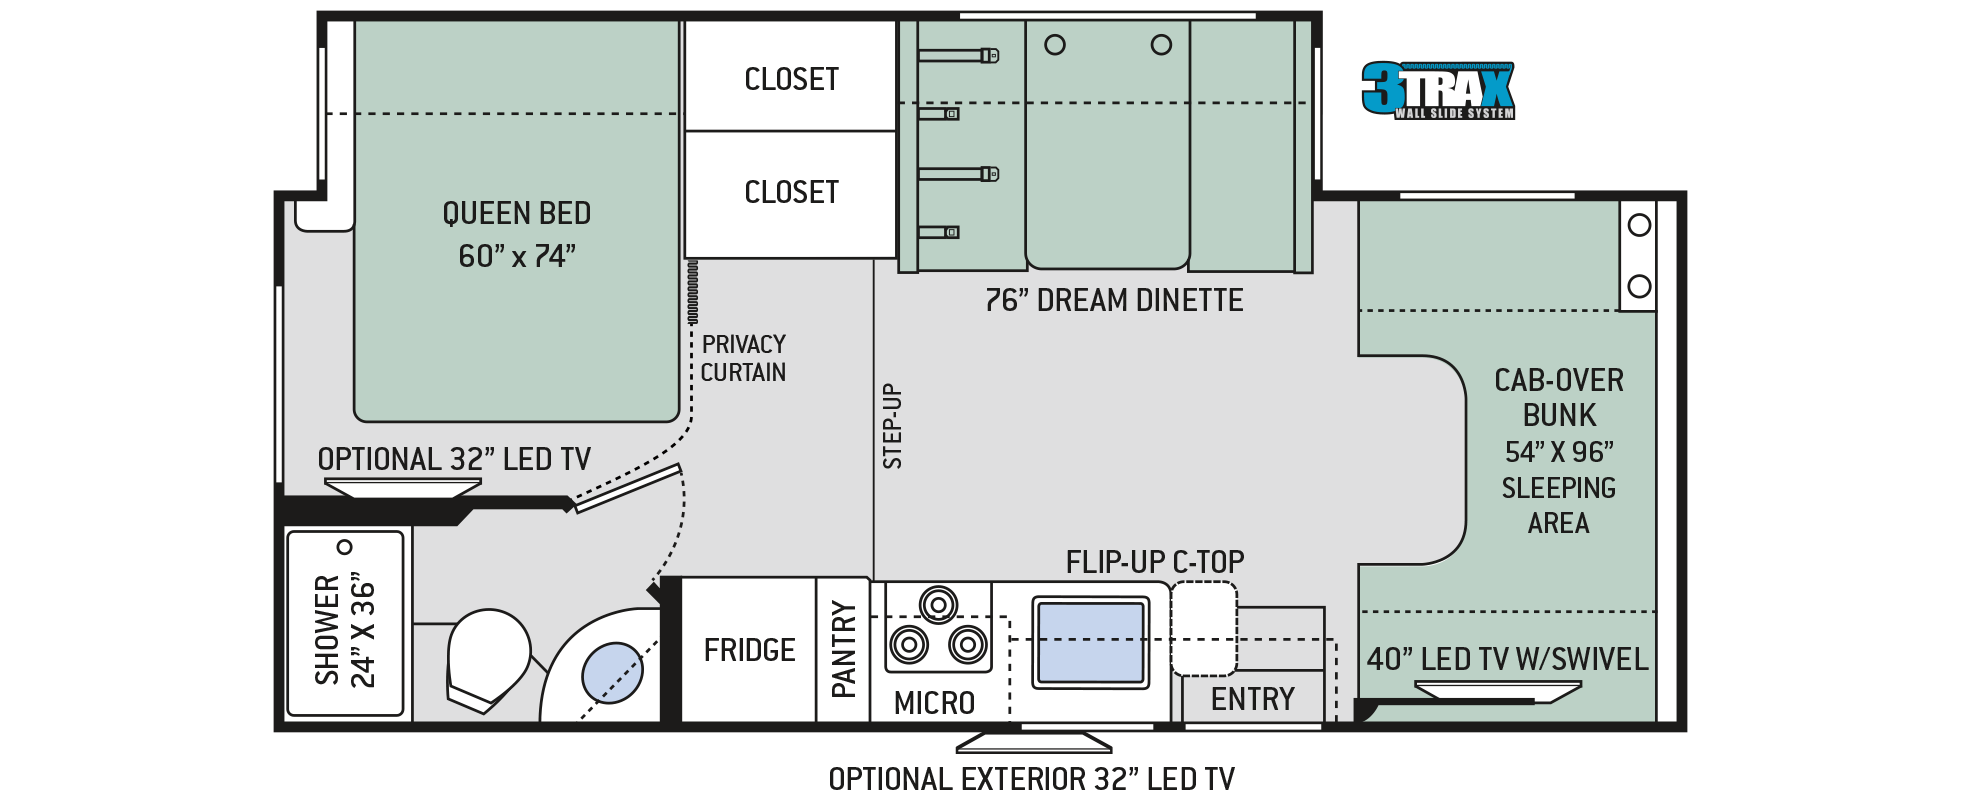 2018 Thor Chateau 24F Floor Plan